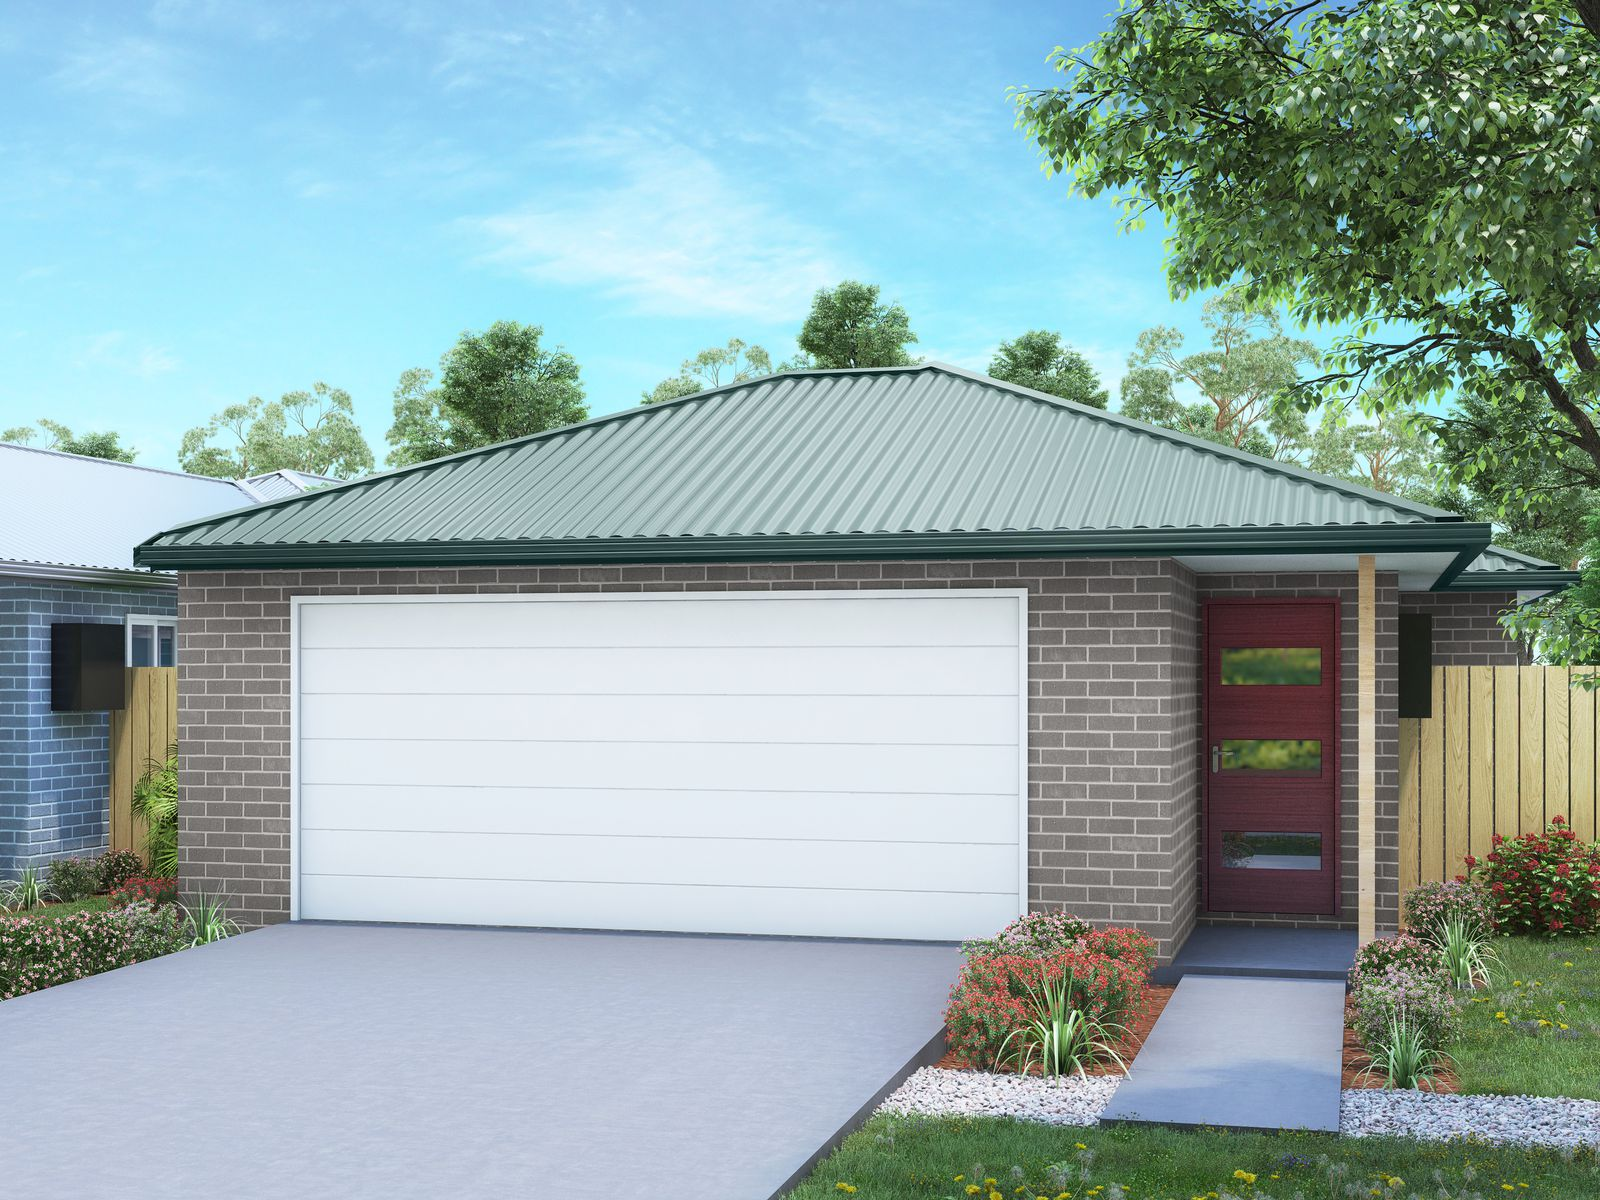 Lot 20, Greenridge Road, Park Ridge